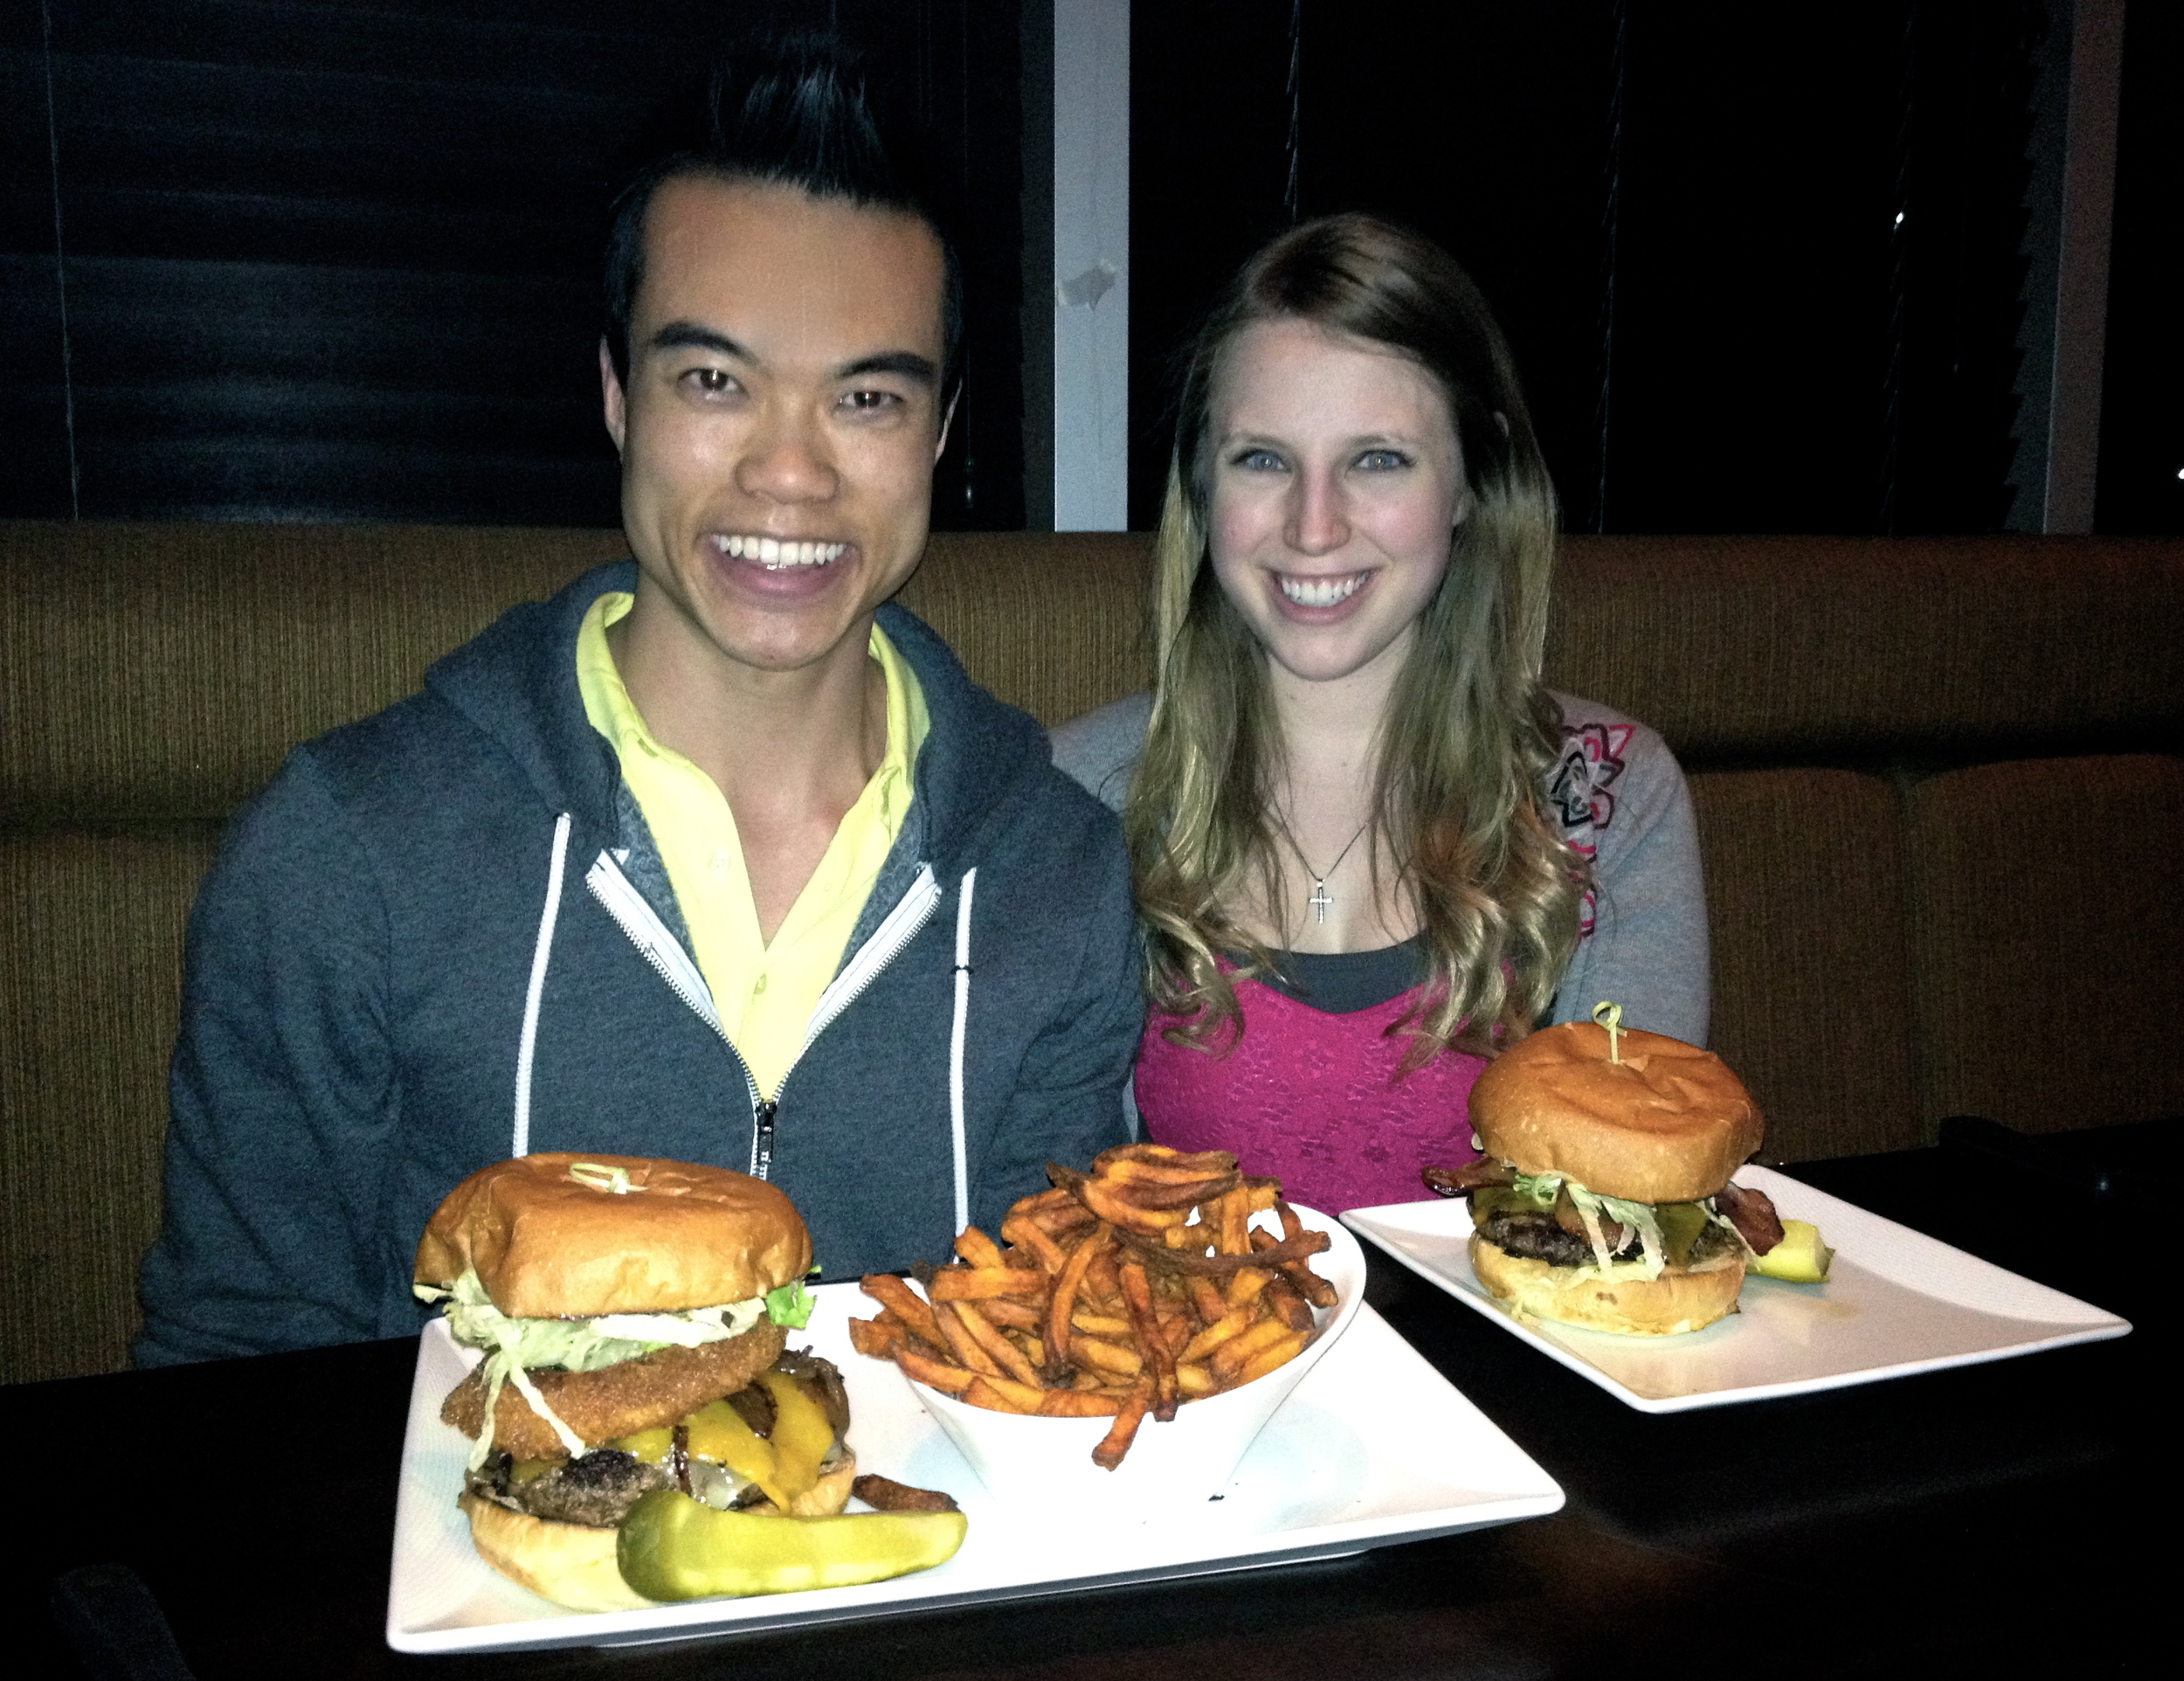 My friend Madeline and I enjoyed our thrilling adventure to burger heaven at Loungeburger, during YYC Burger Week!